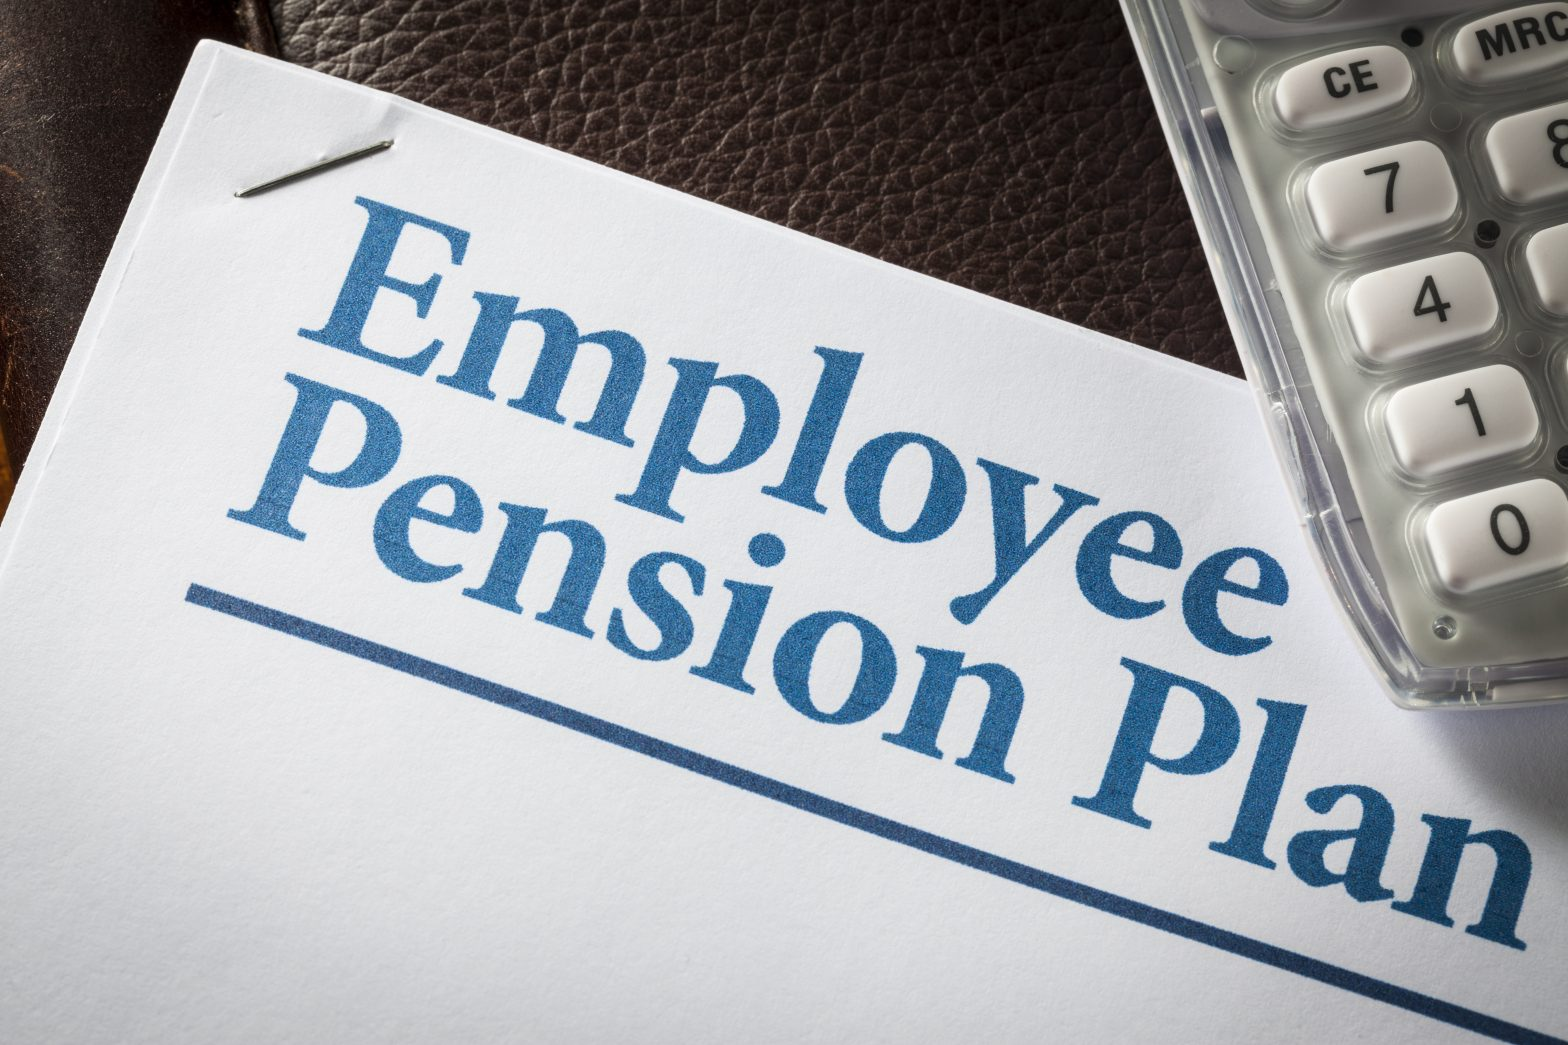 pension benefit guaranty corporation pension payee